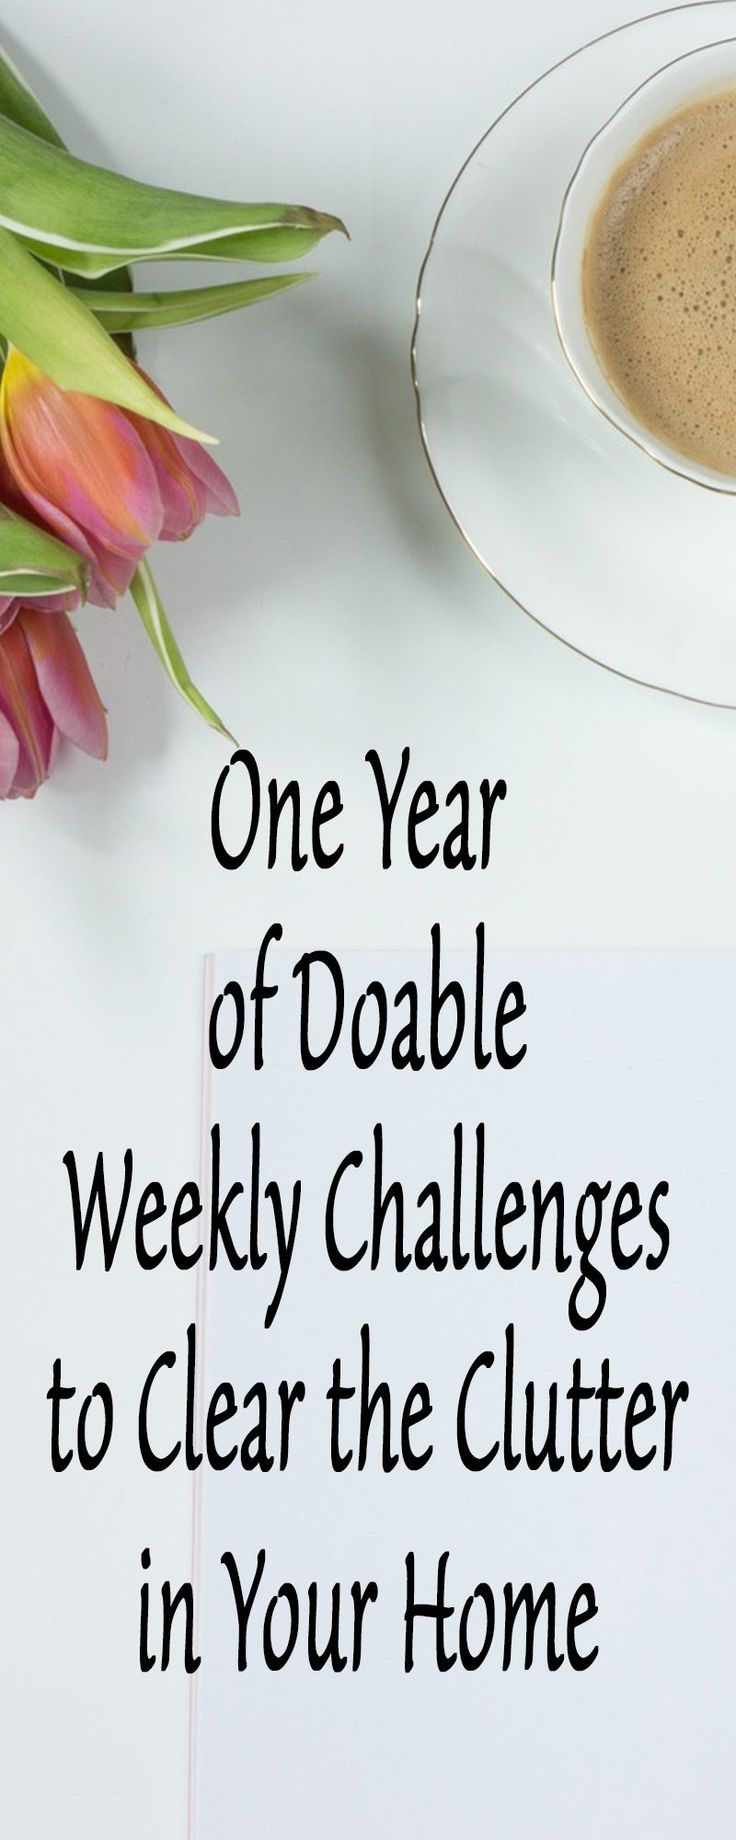 NEW CHALLENGE FOR 2018 - Do you want to get your home organized this year but don't know where to start? Do this NEW One Year of Doable Weekly Challenges to Clear the Clutter in Your Home challenge and take part in our private Facebook Support group with other members who are taking on their homes this year! - https://sabrinasorganizing.com/doable-weekly-challenges/